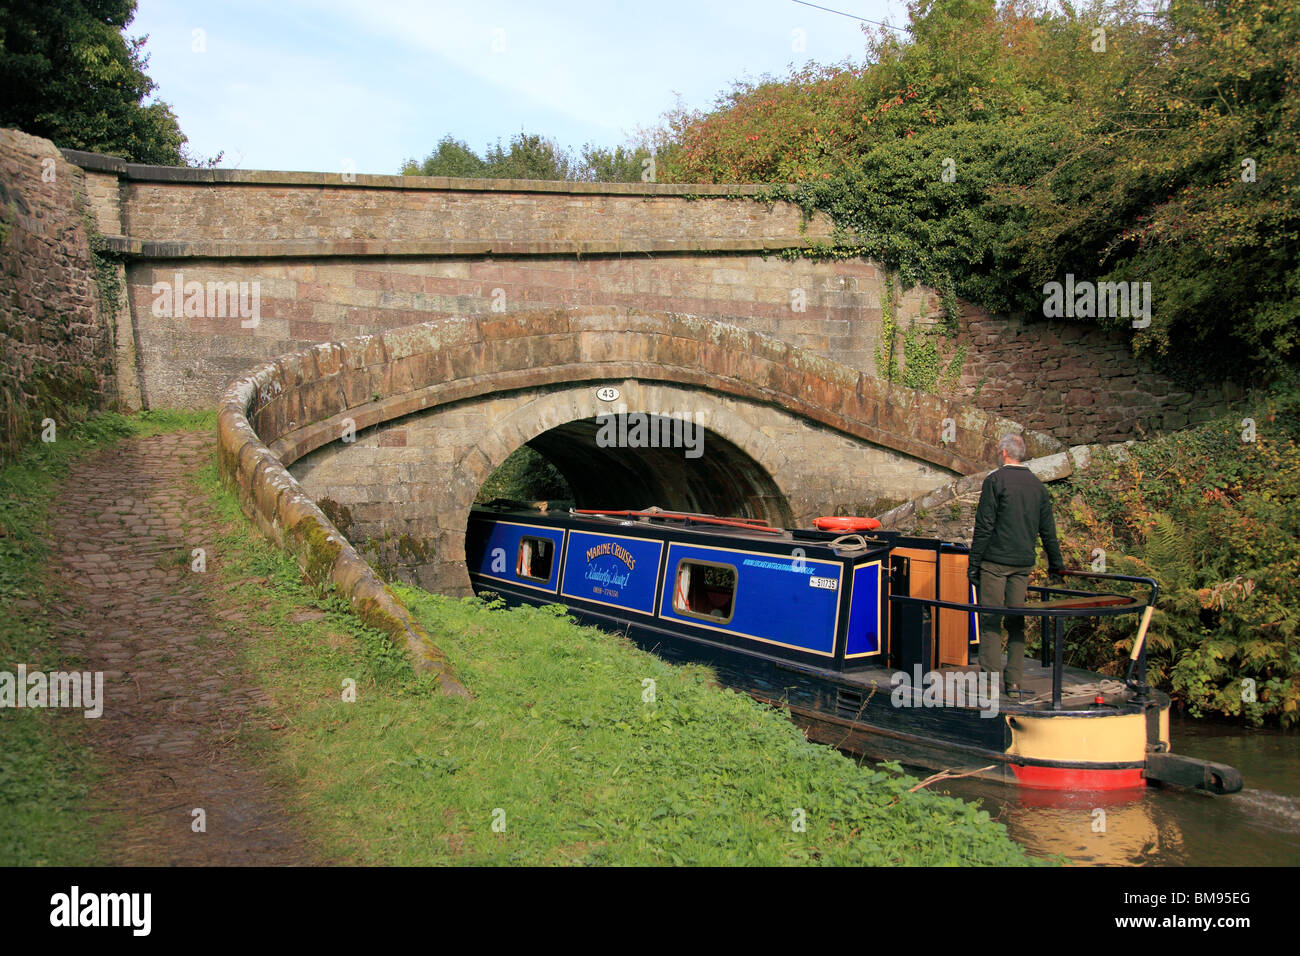 Foden Bank bridge, no. 43, on the Macclesfield Canal, by Macclesfield, a fine example of a snake (or turnover) bridge - Stock Image